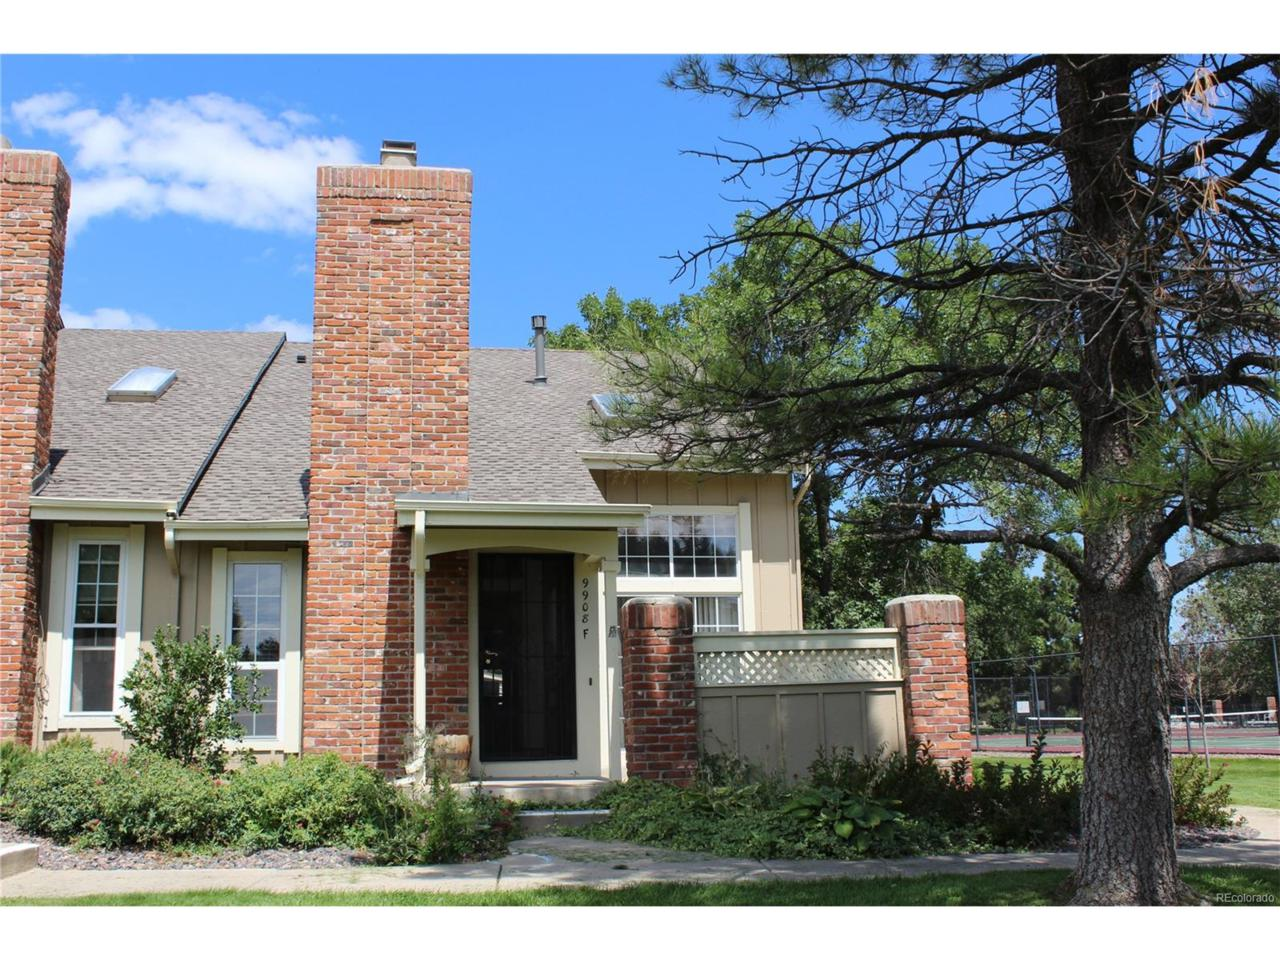 9908 Grove Way F, Westminster, CO 80031 (MLS #5369631) :: 8z Real Estate